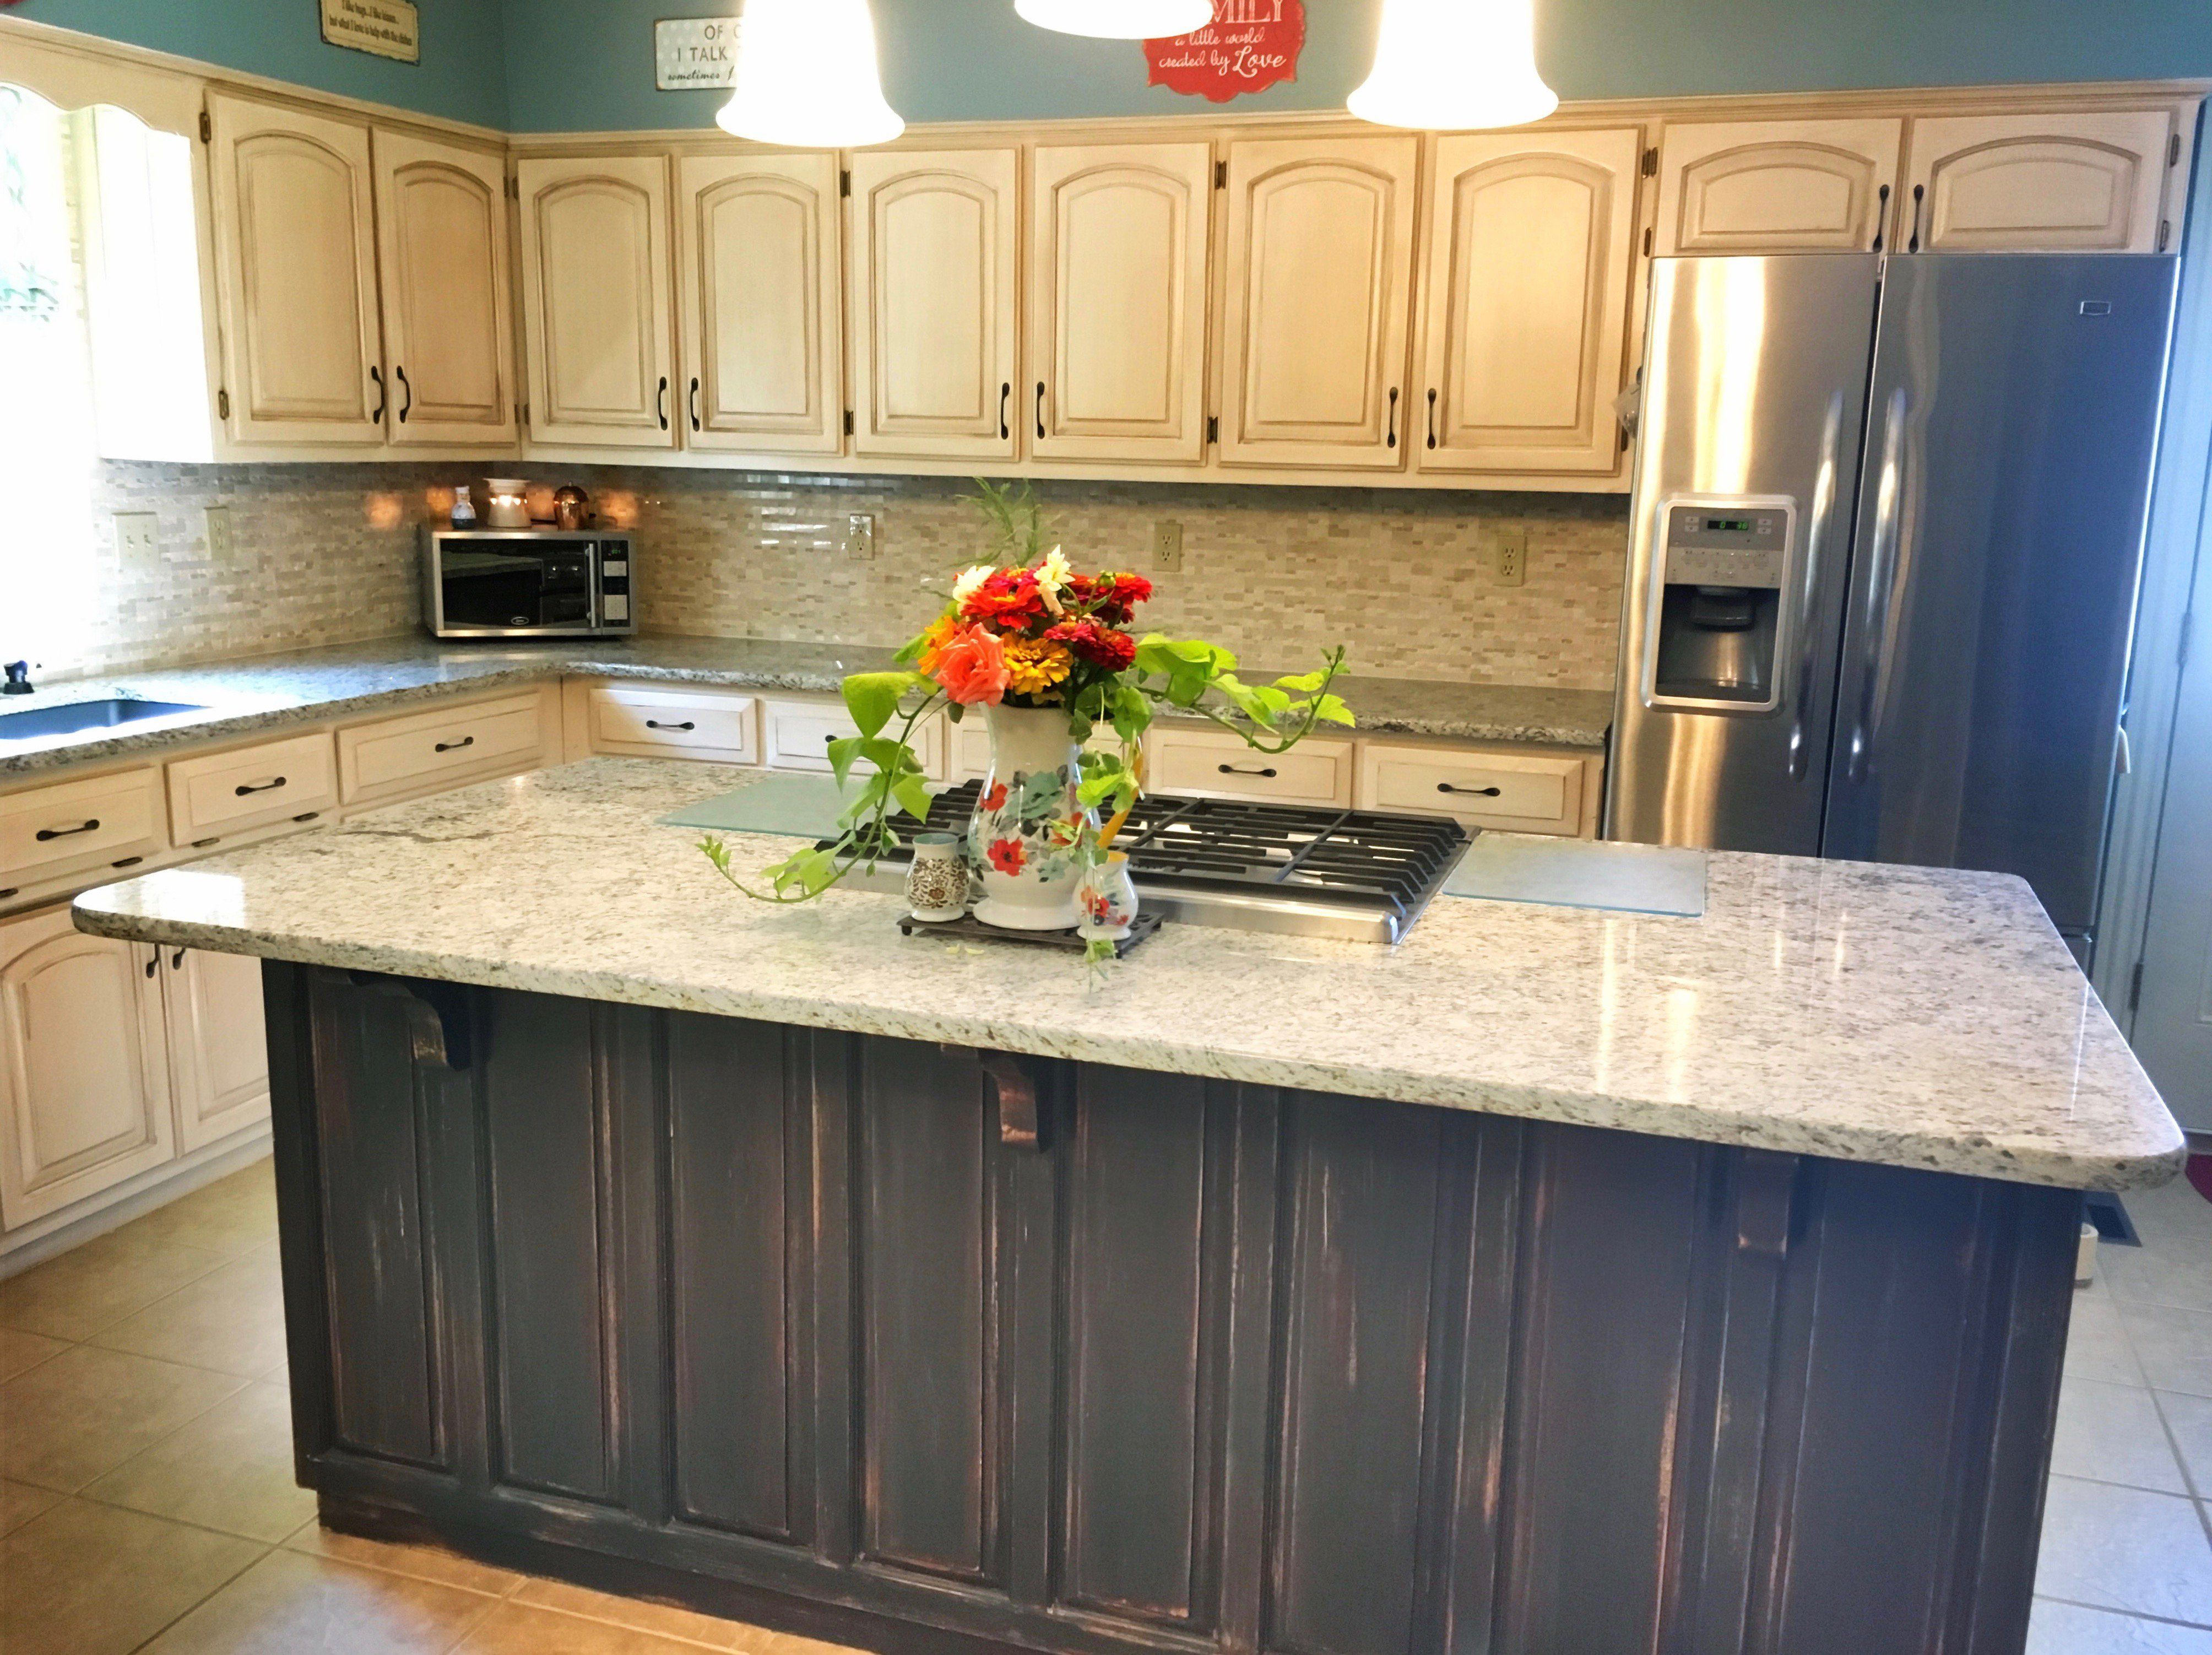 Diy Kitchen Cabinet Painting Course Home Decor